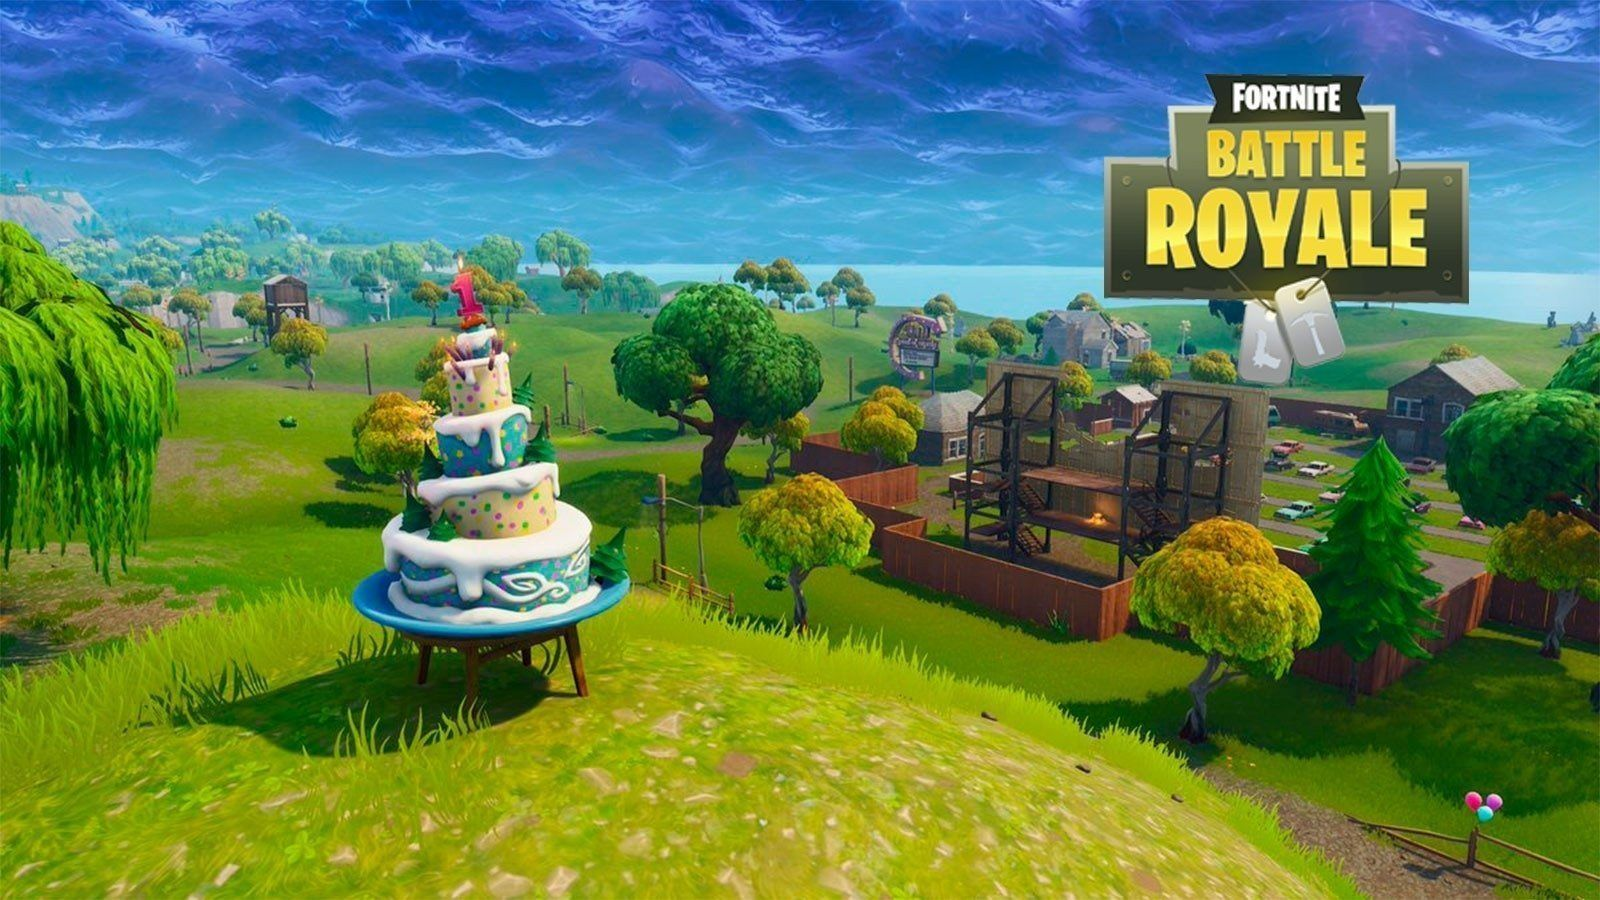 All Known Birthday Cake Locations For The Fortnite Battle Royale